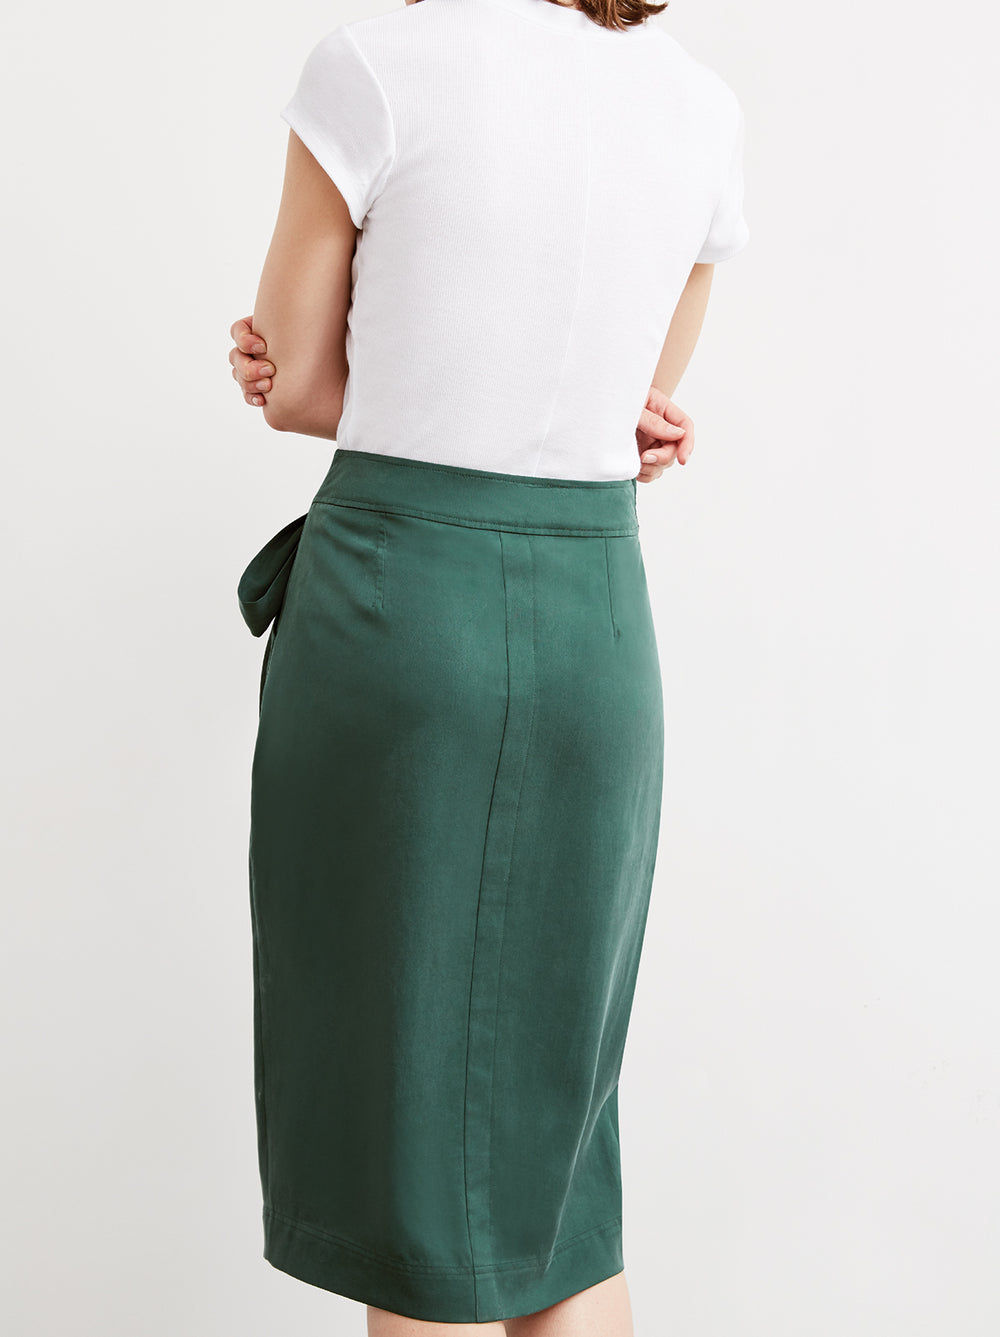 Bethany Green Tie Waist Skirt by KITRI Studio